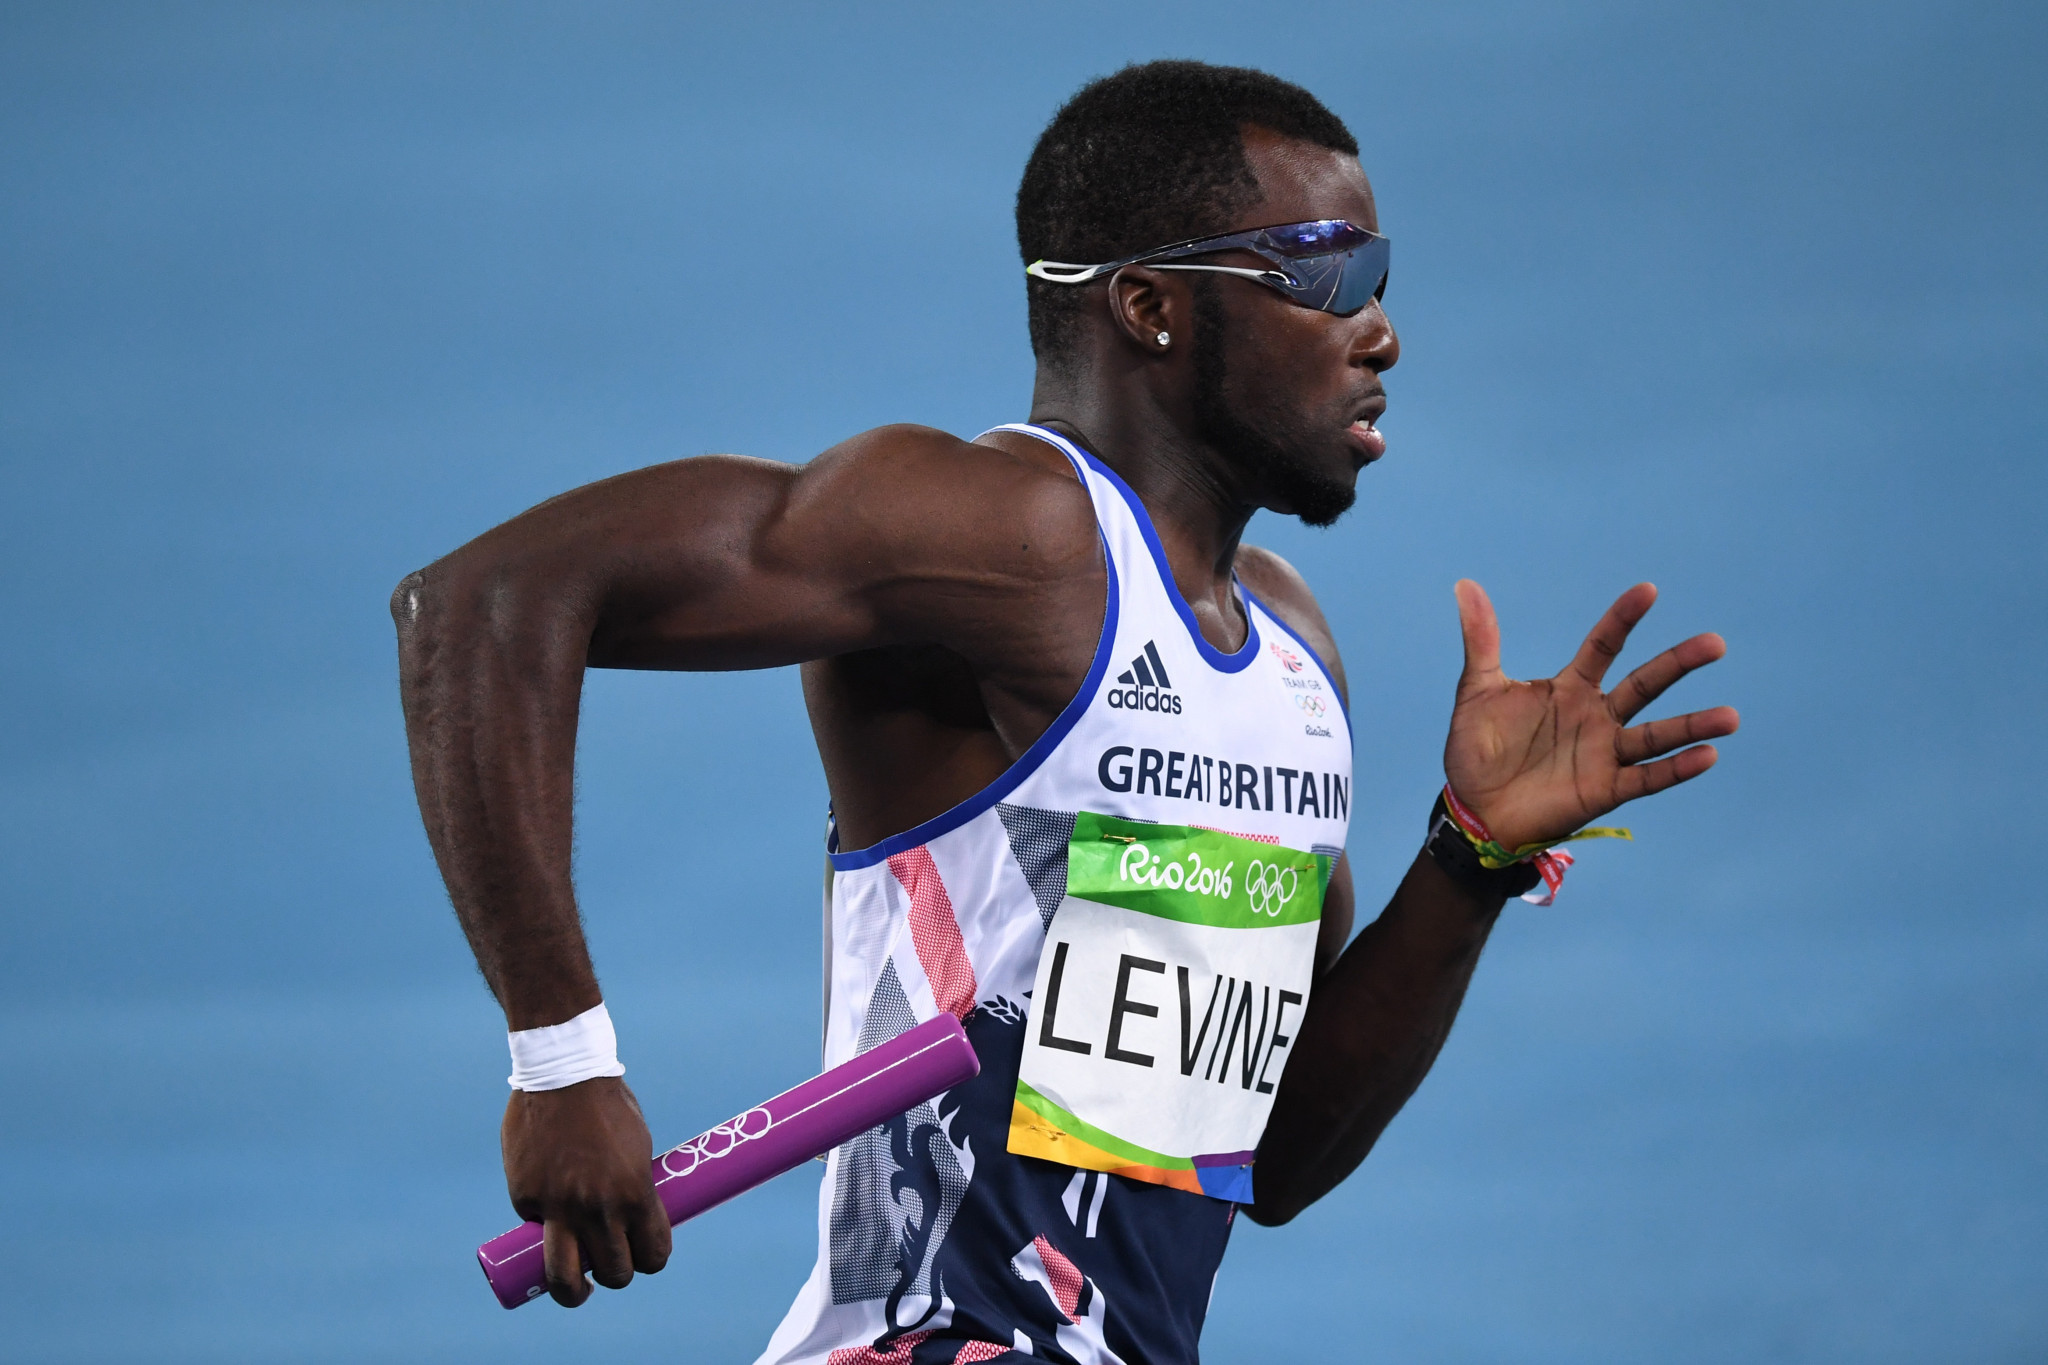 British sprinter Nigel Levine, a double European gold medallist and three-time world medallist, is alleged to have failed a drugs test ©Getty Images